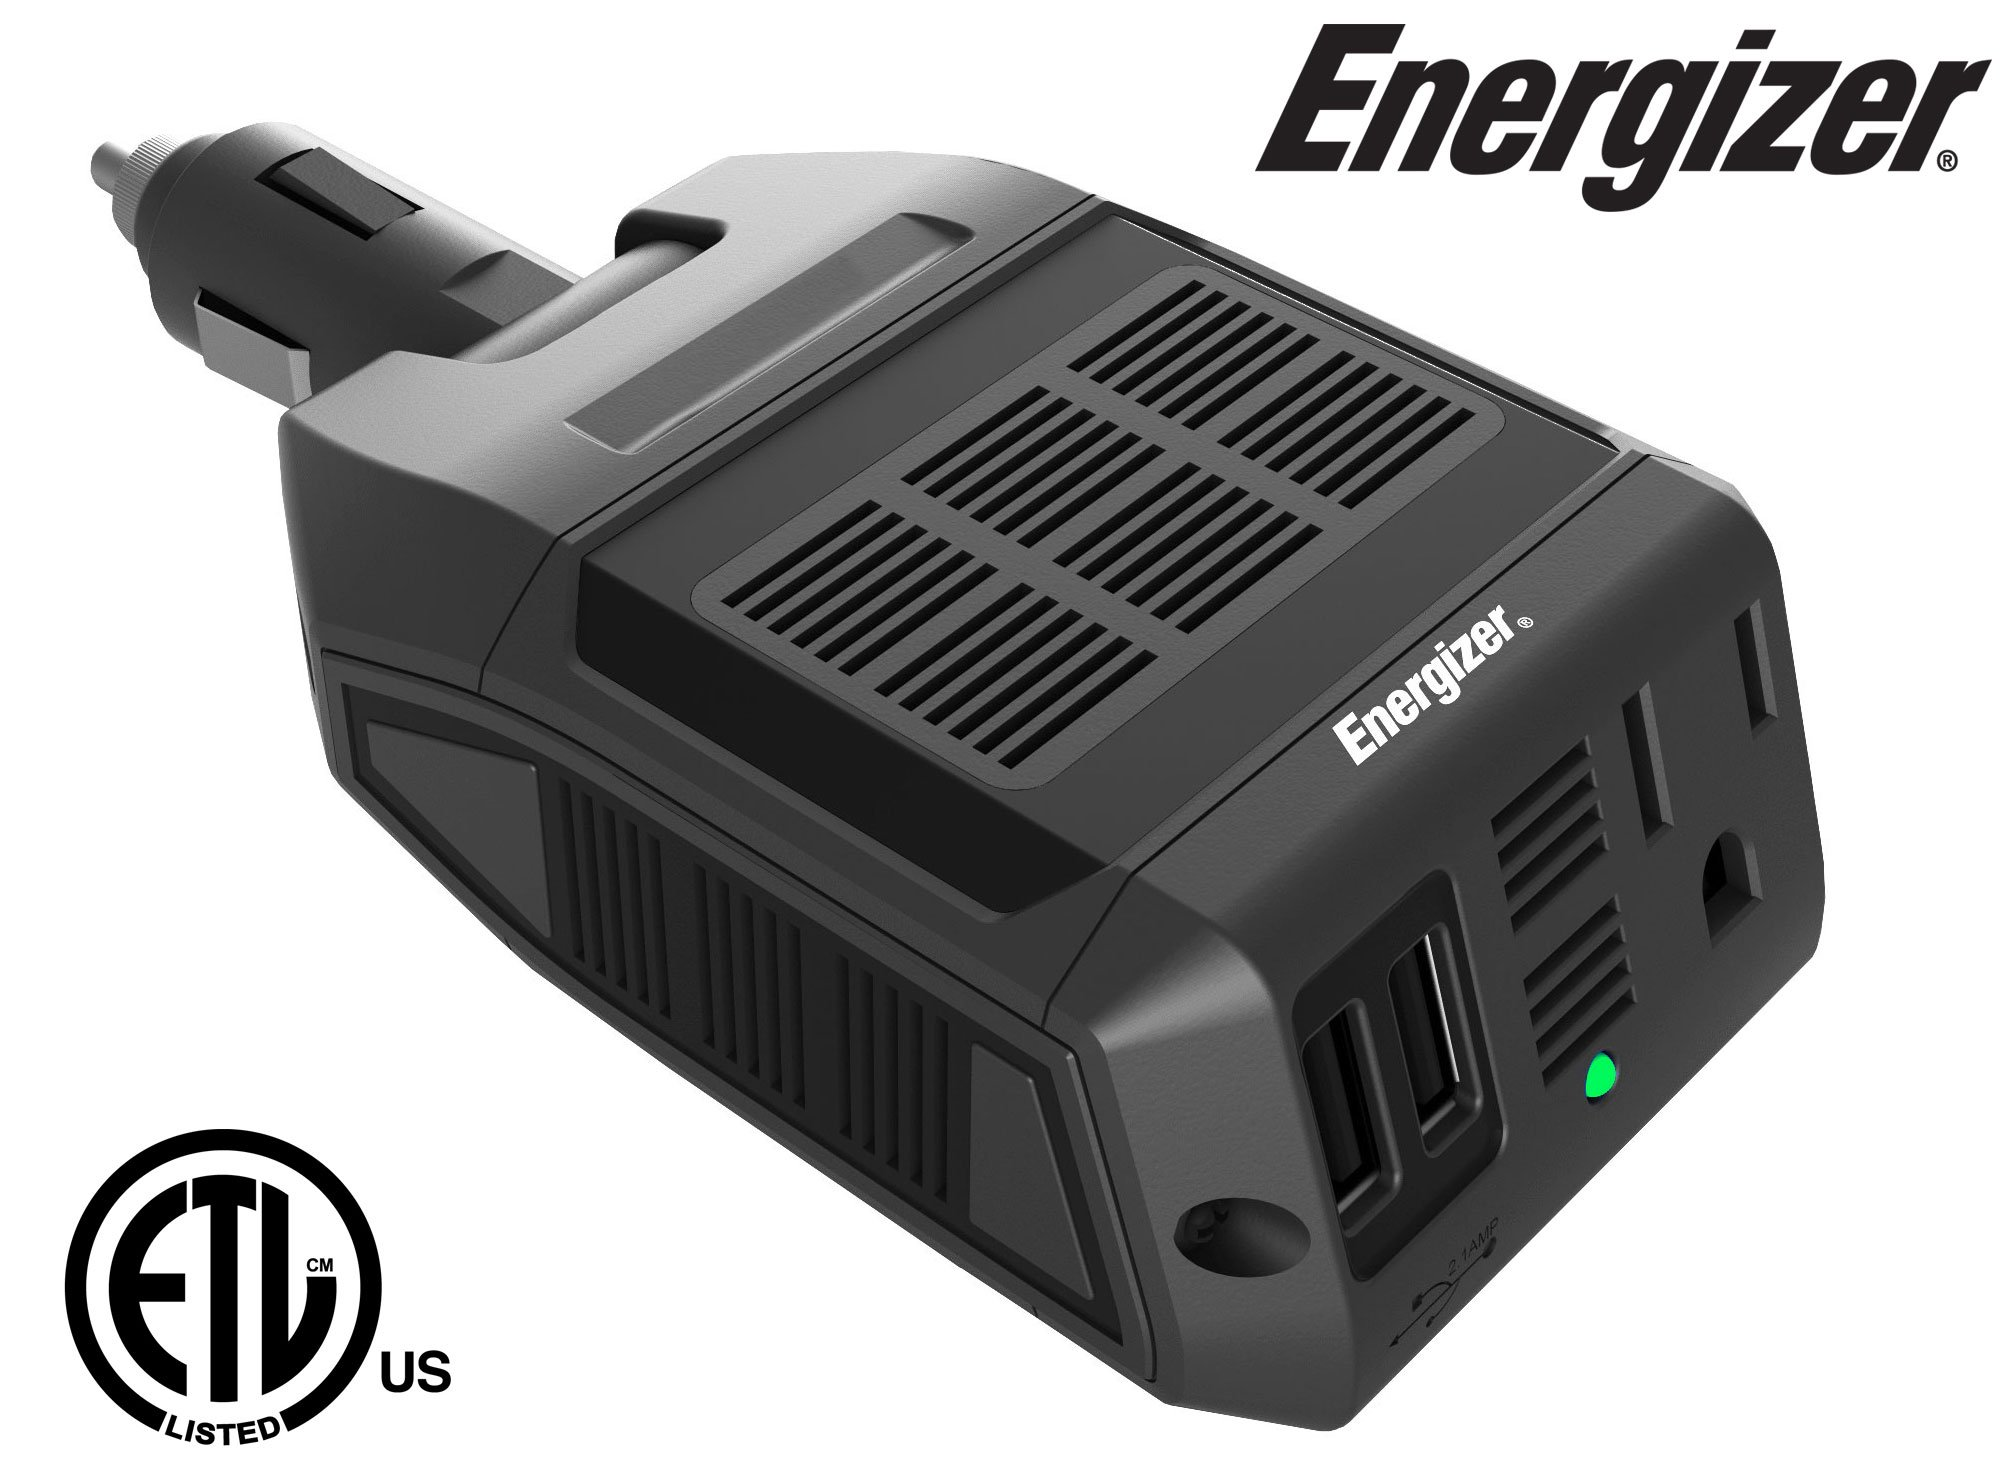 Energizer 100 Watt Direct Plug-in, Ultra Compact DC To AC Power Inverter